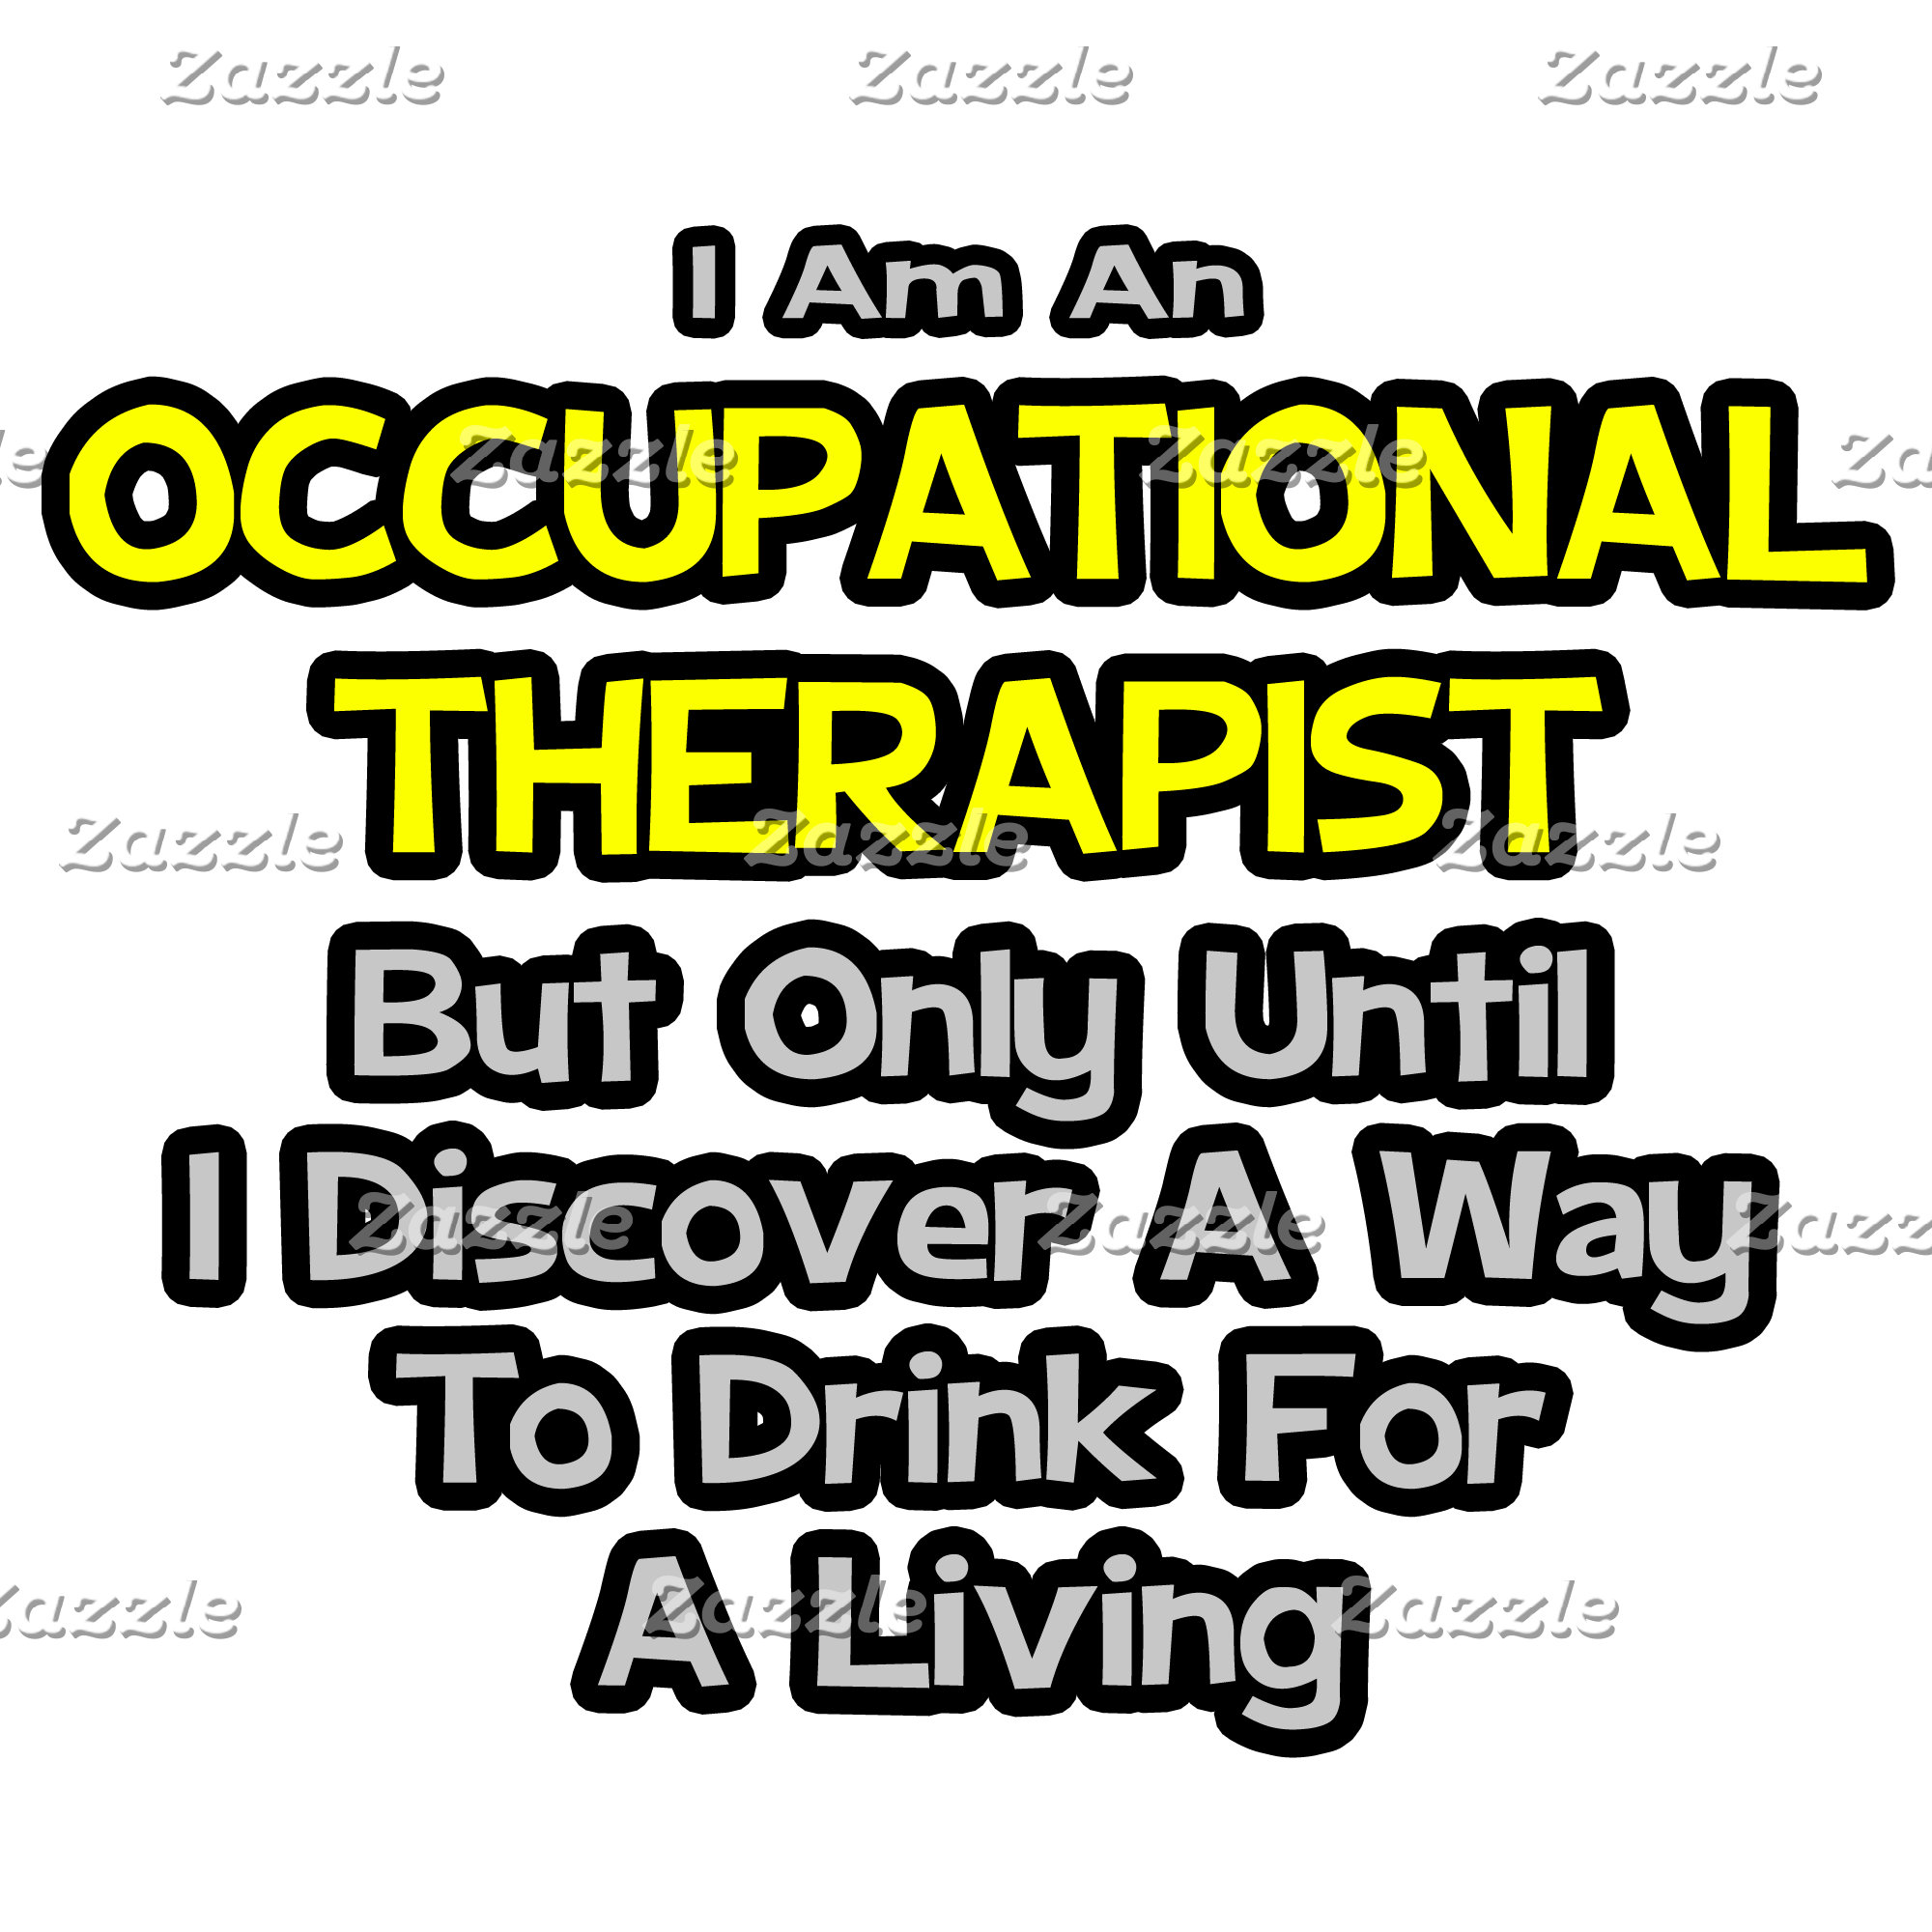 Occupational Therapist .. Drink for a Living